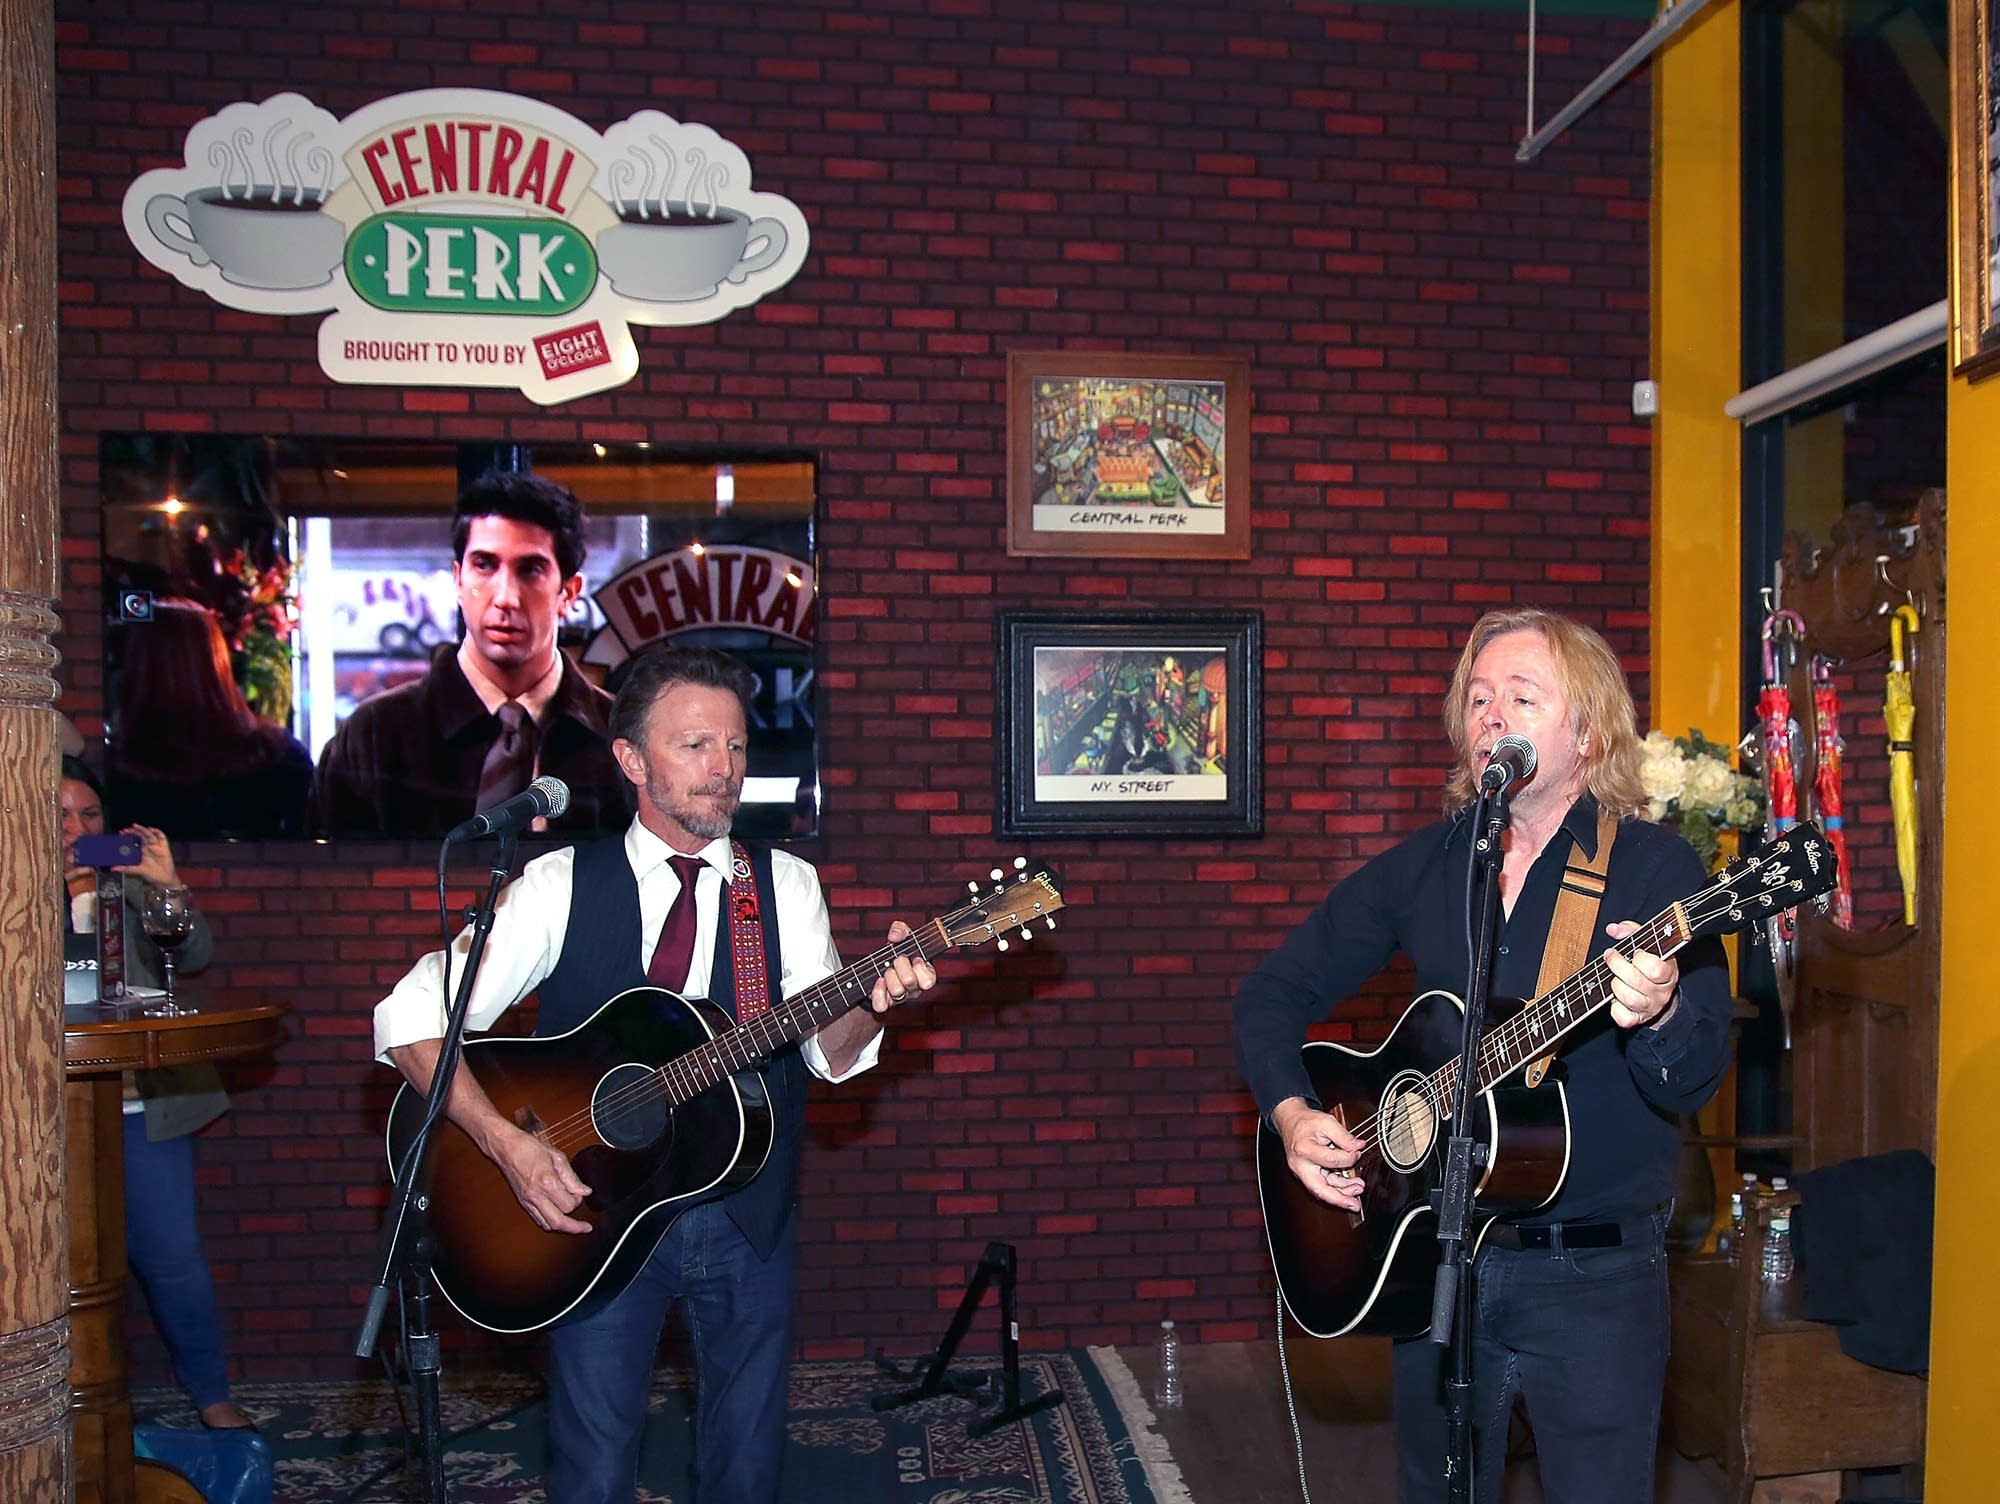 The Rembrandts perform at Central Perk for 20th Anniversary of